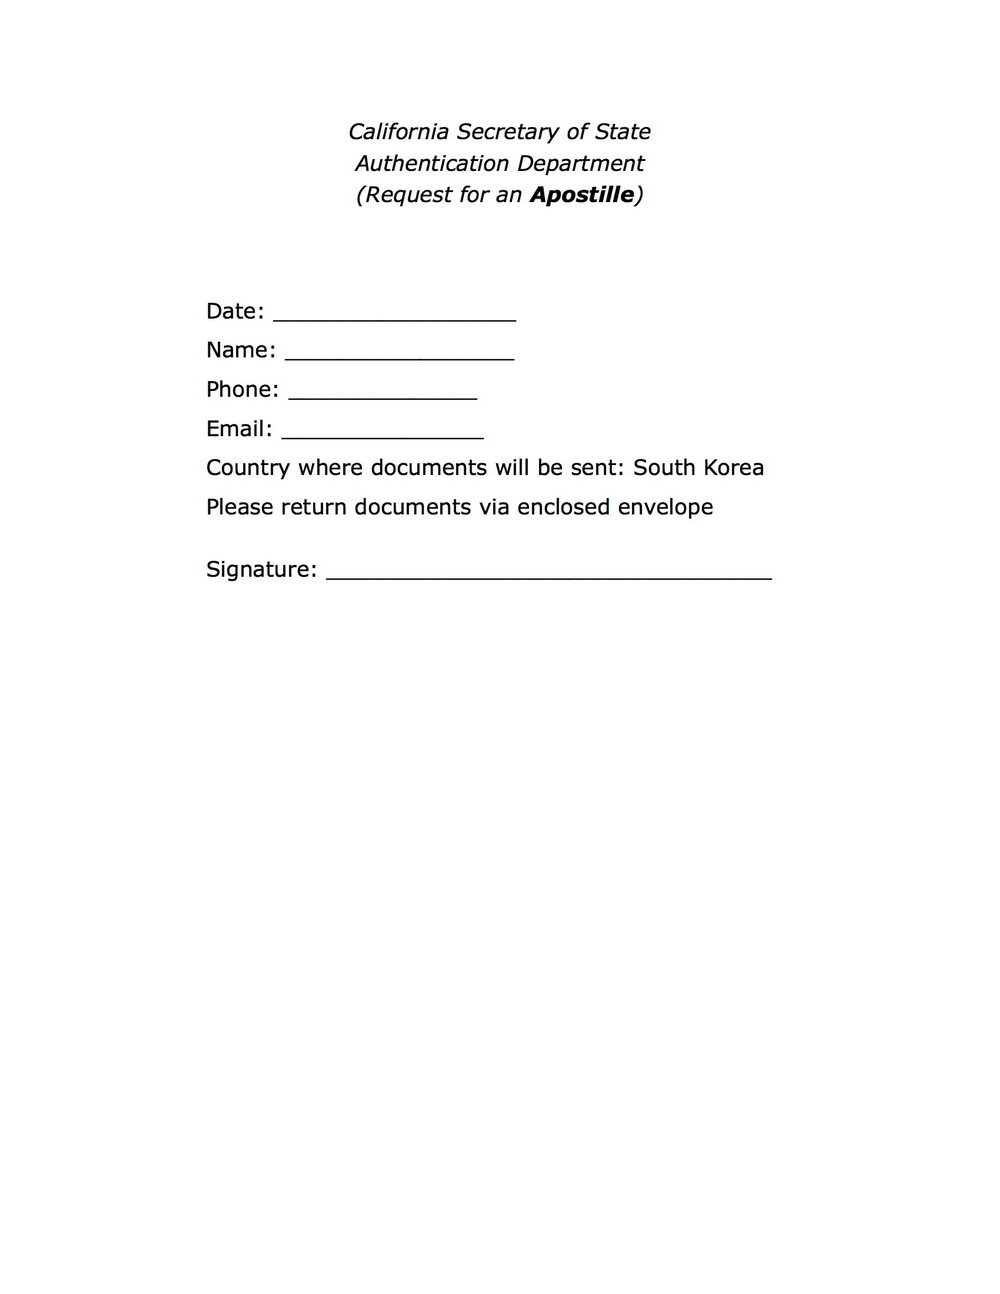 Florida Apostille Cover Letter Example